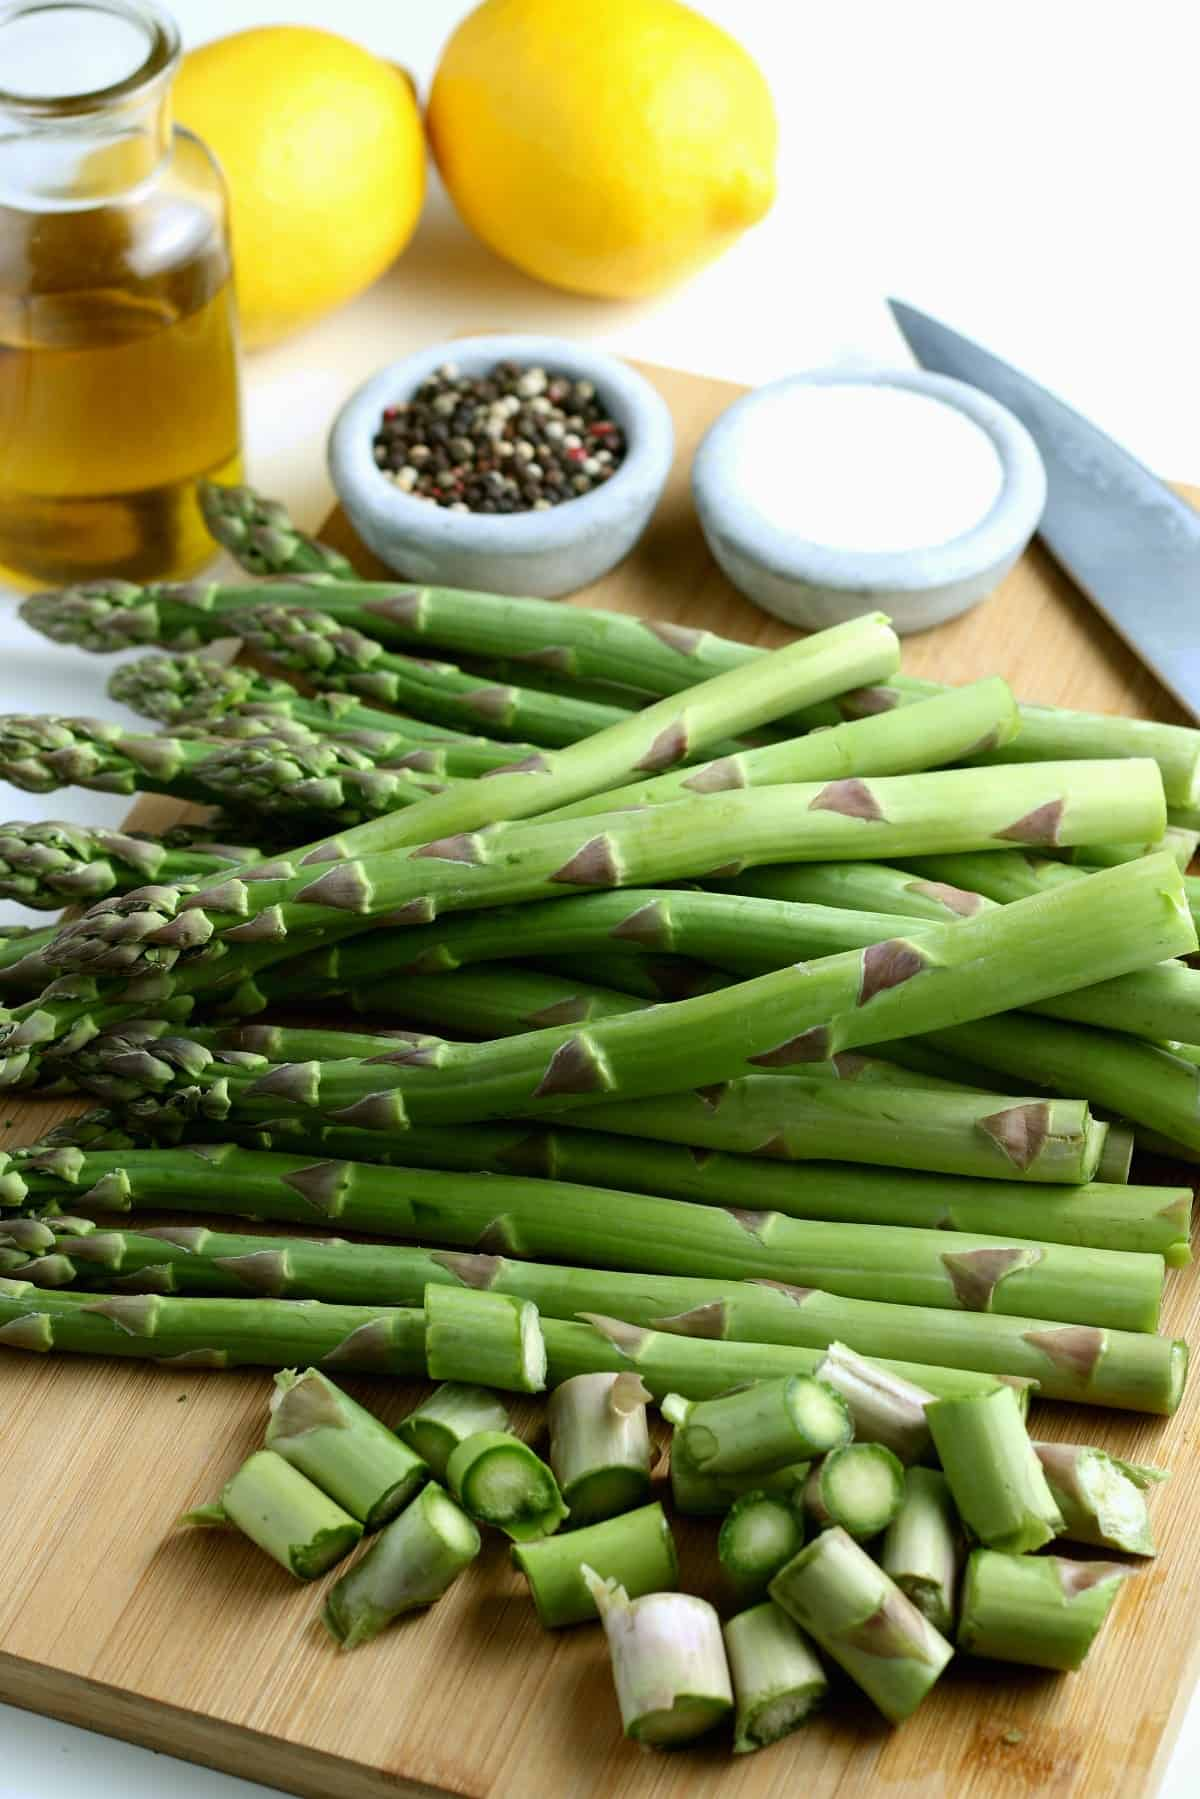 A large bunch of asparagus spears and laying on a wooden cutting board with about an inch or two cut off the large stalks.